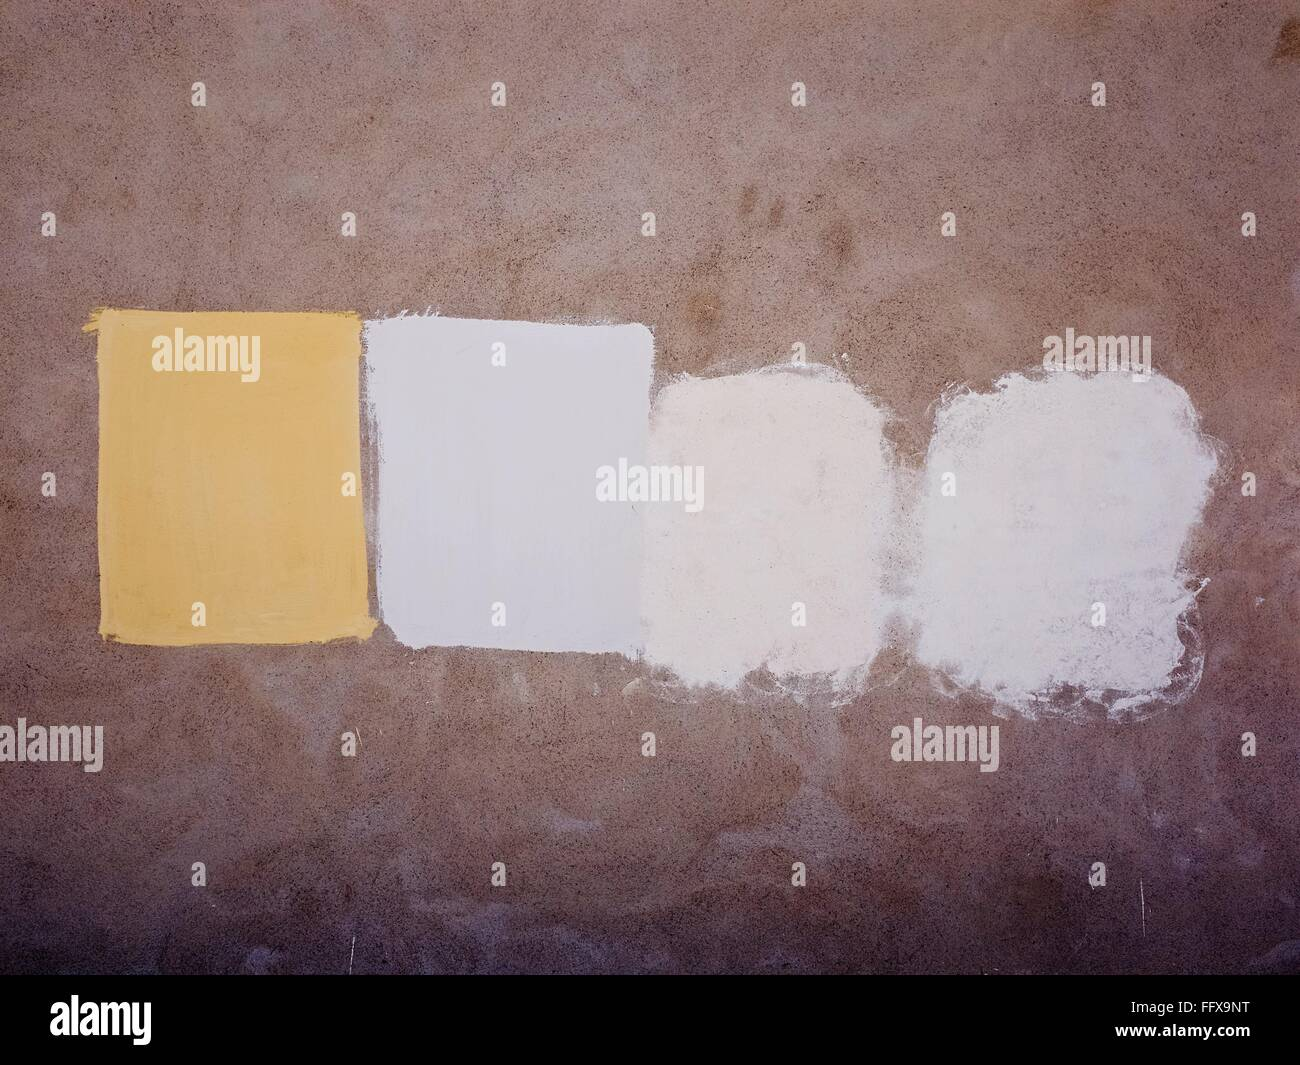 Paint Swatches On Wall - Stock Image